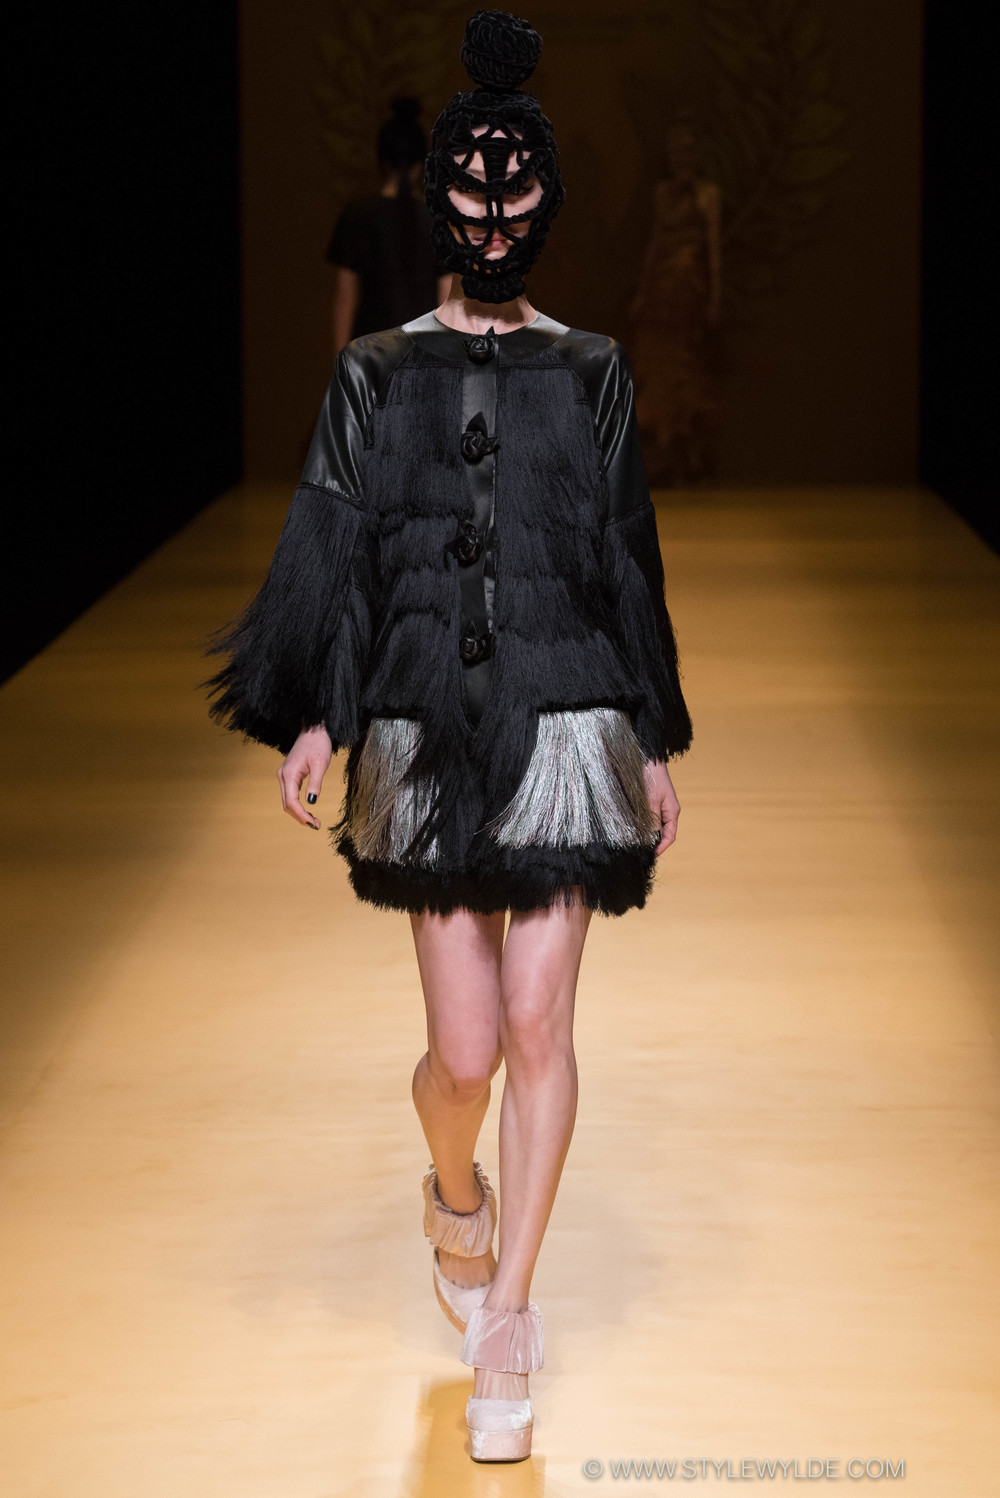 STYLEWYLDE-AsiaFashionMeets-Tokyo_Aw16-38.jpg